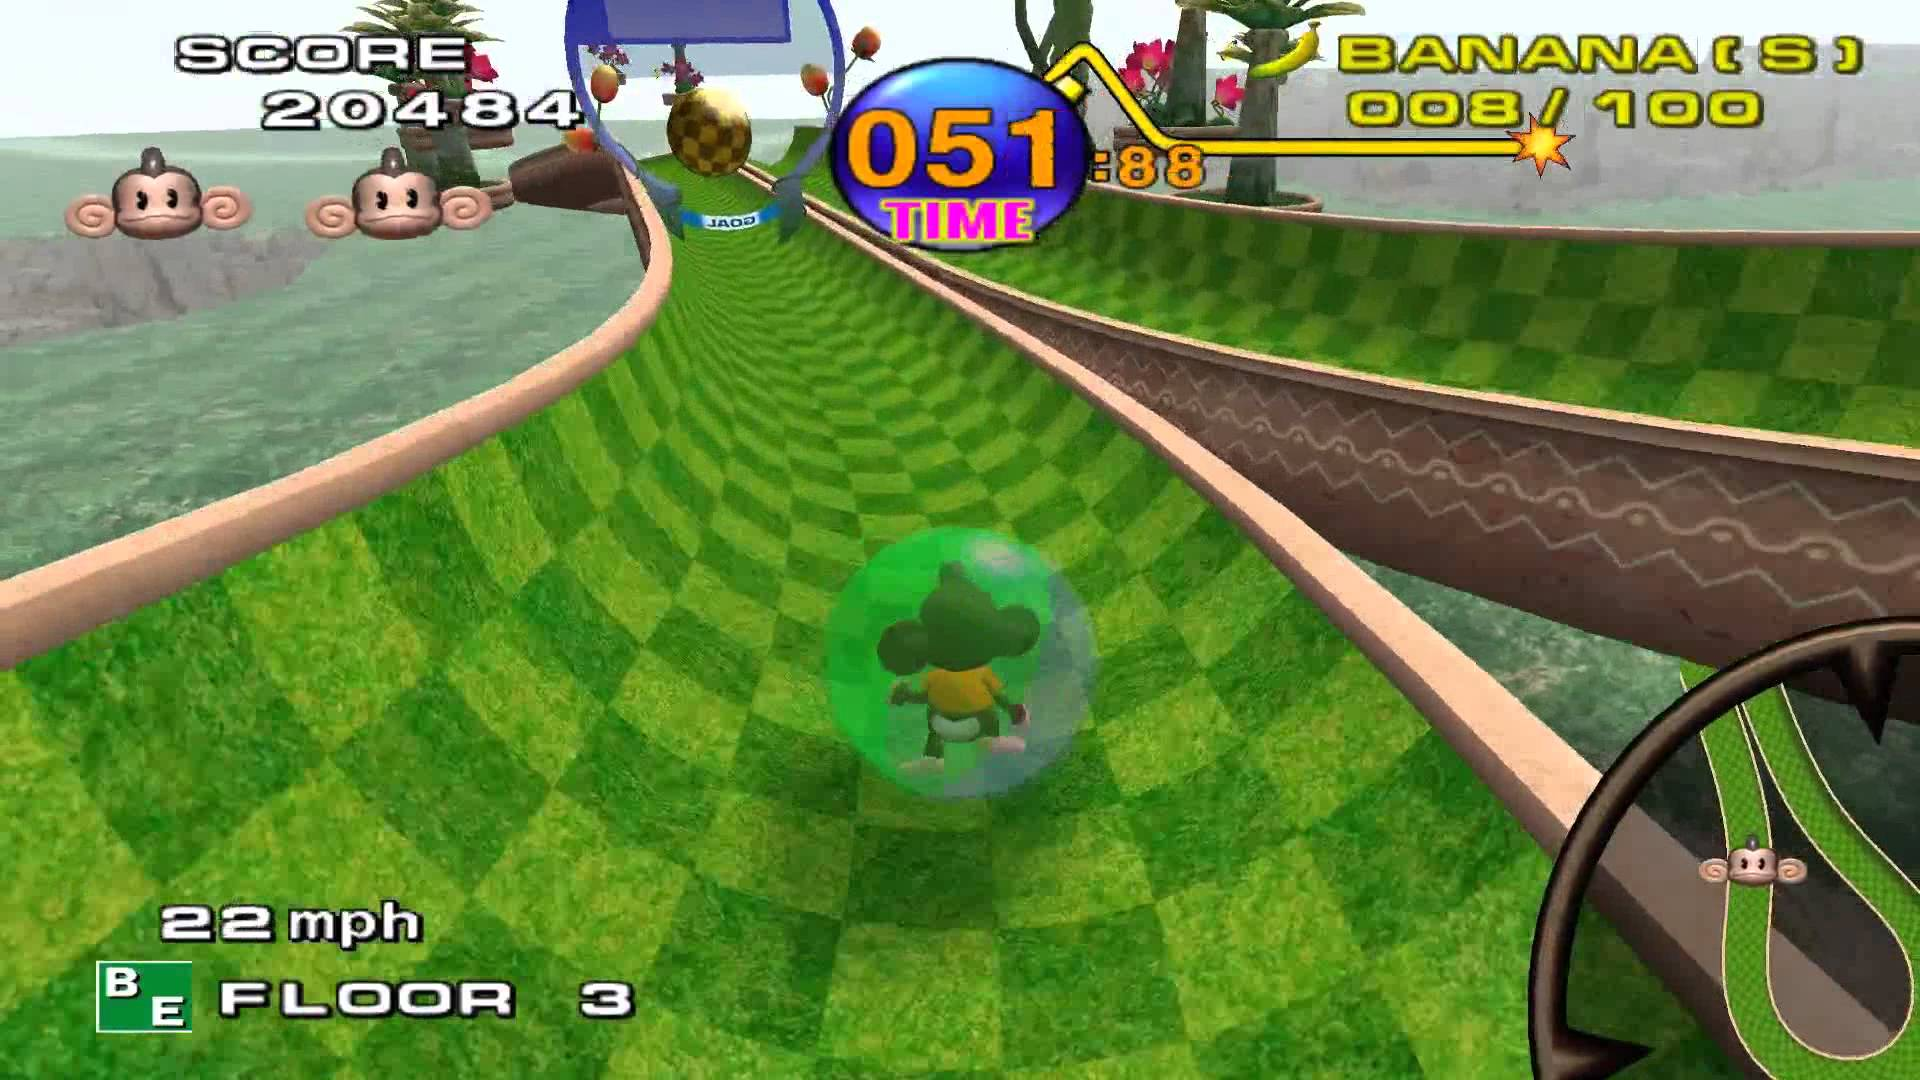 We need a Super Monkey Ball reboot on the Switch | Shacknews